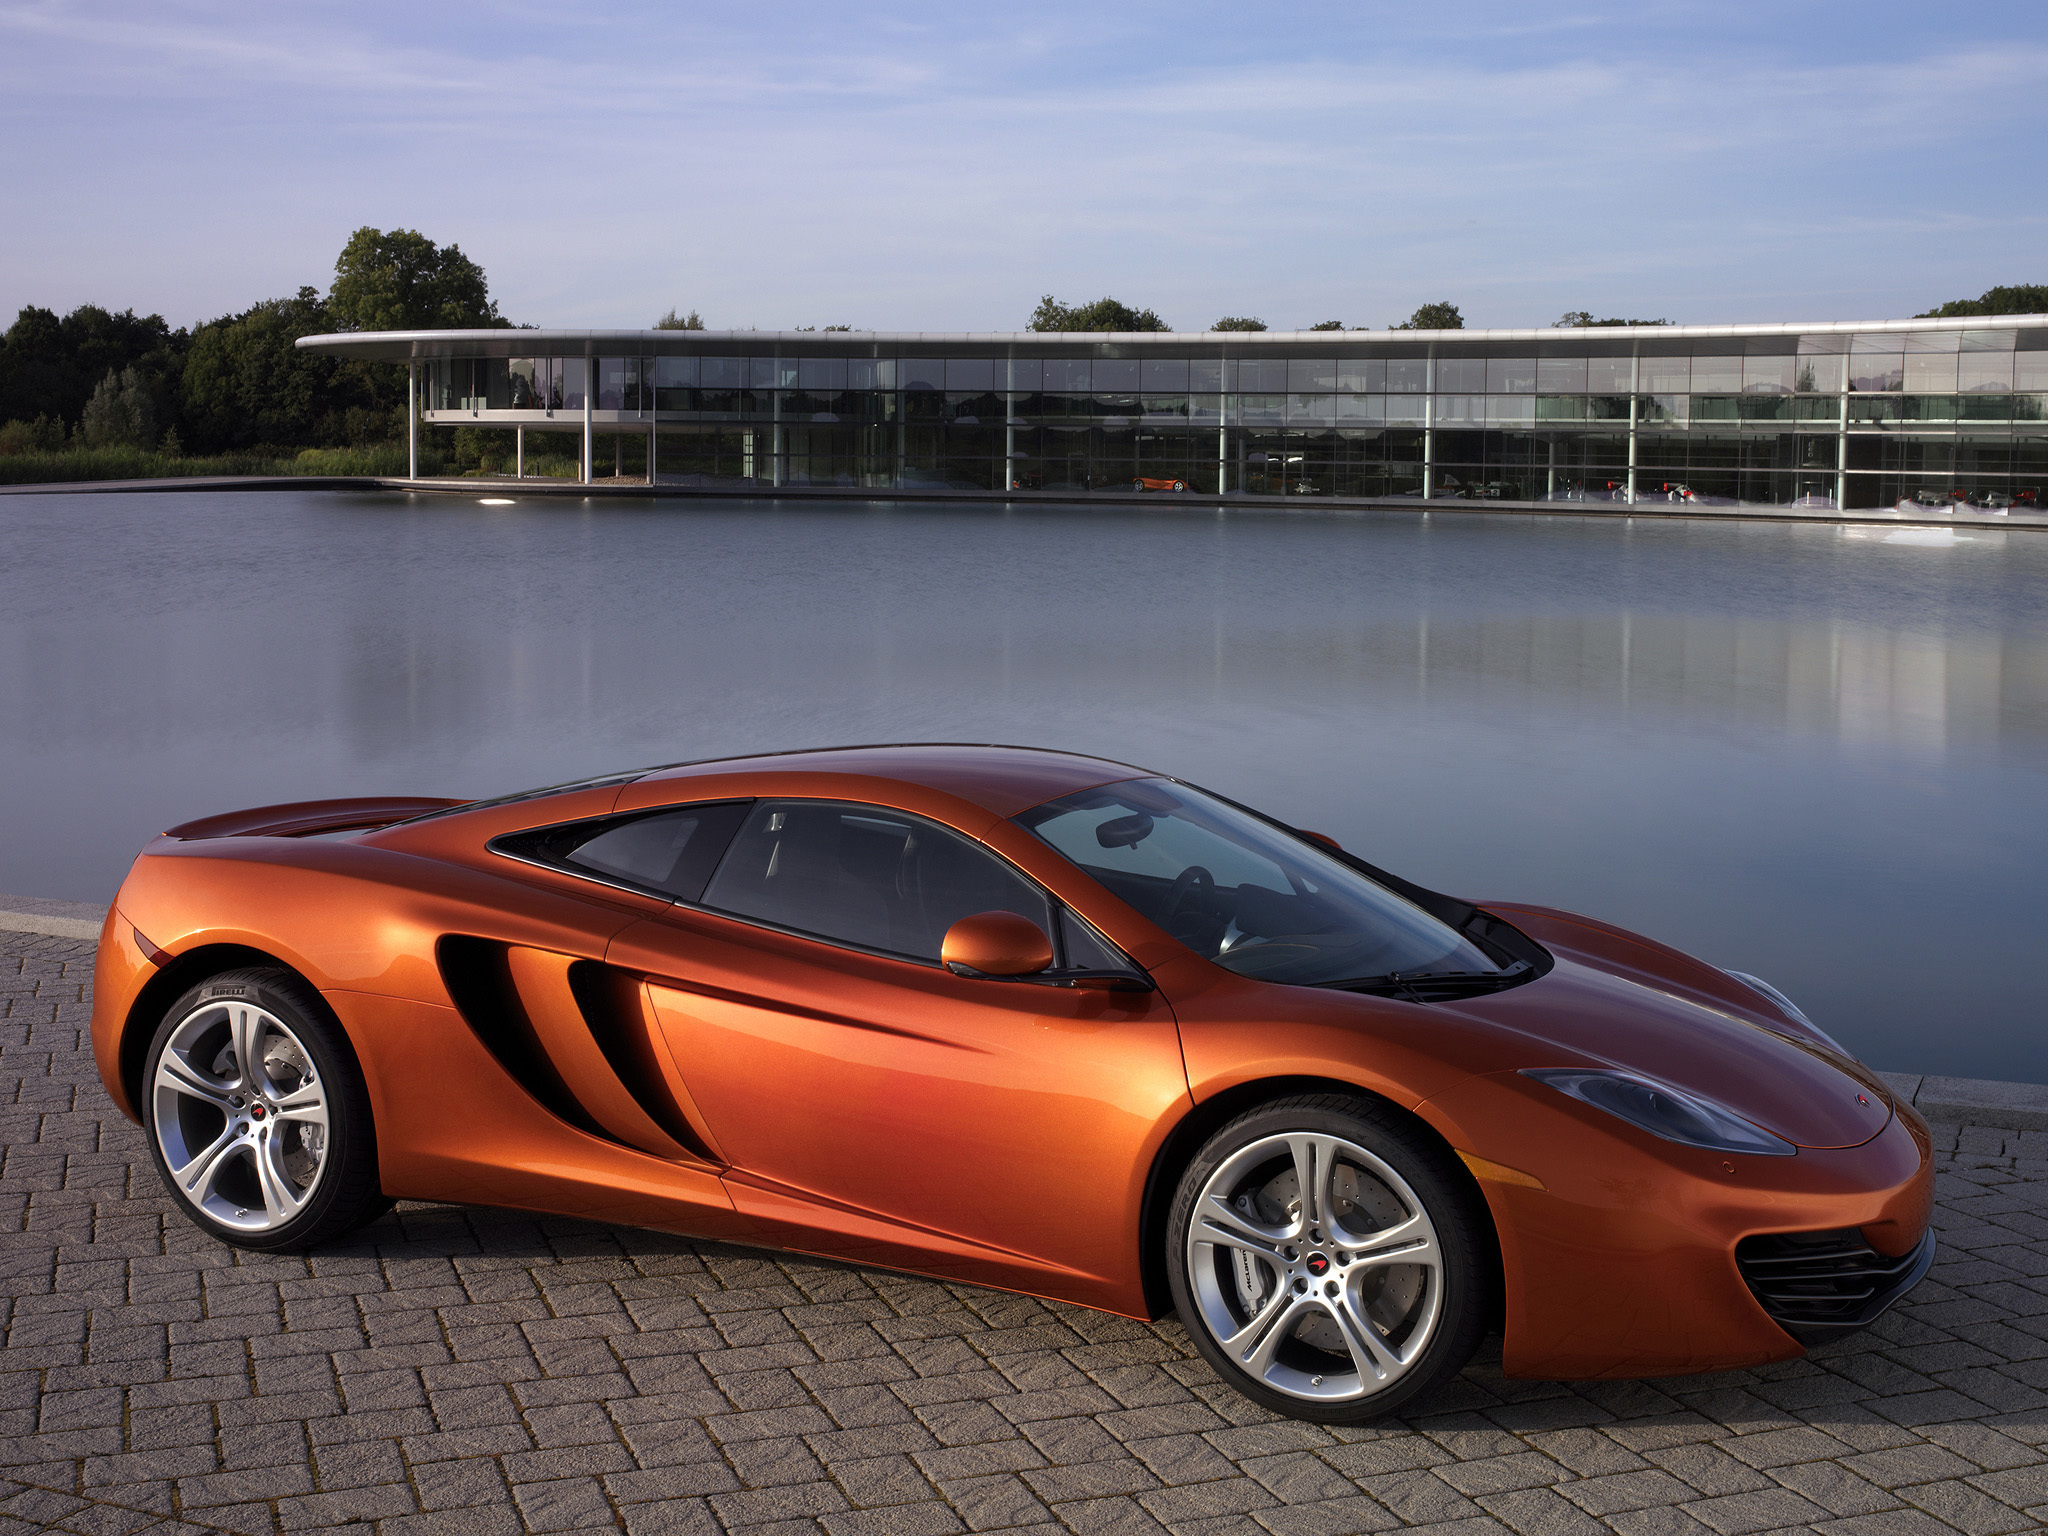 123515 download wallpaper Cars, Mclaren, Mp4-12C, Pool, Auto screensavers and pictures for free